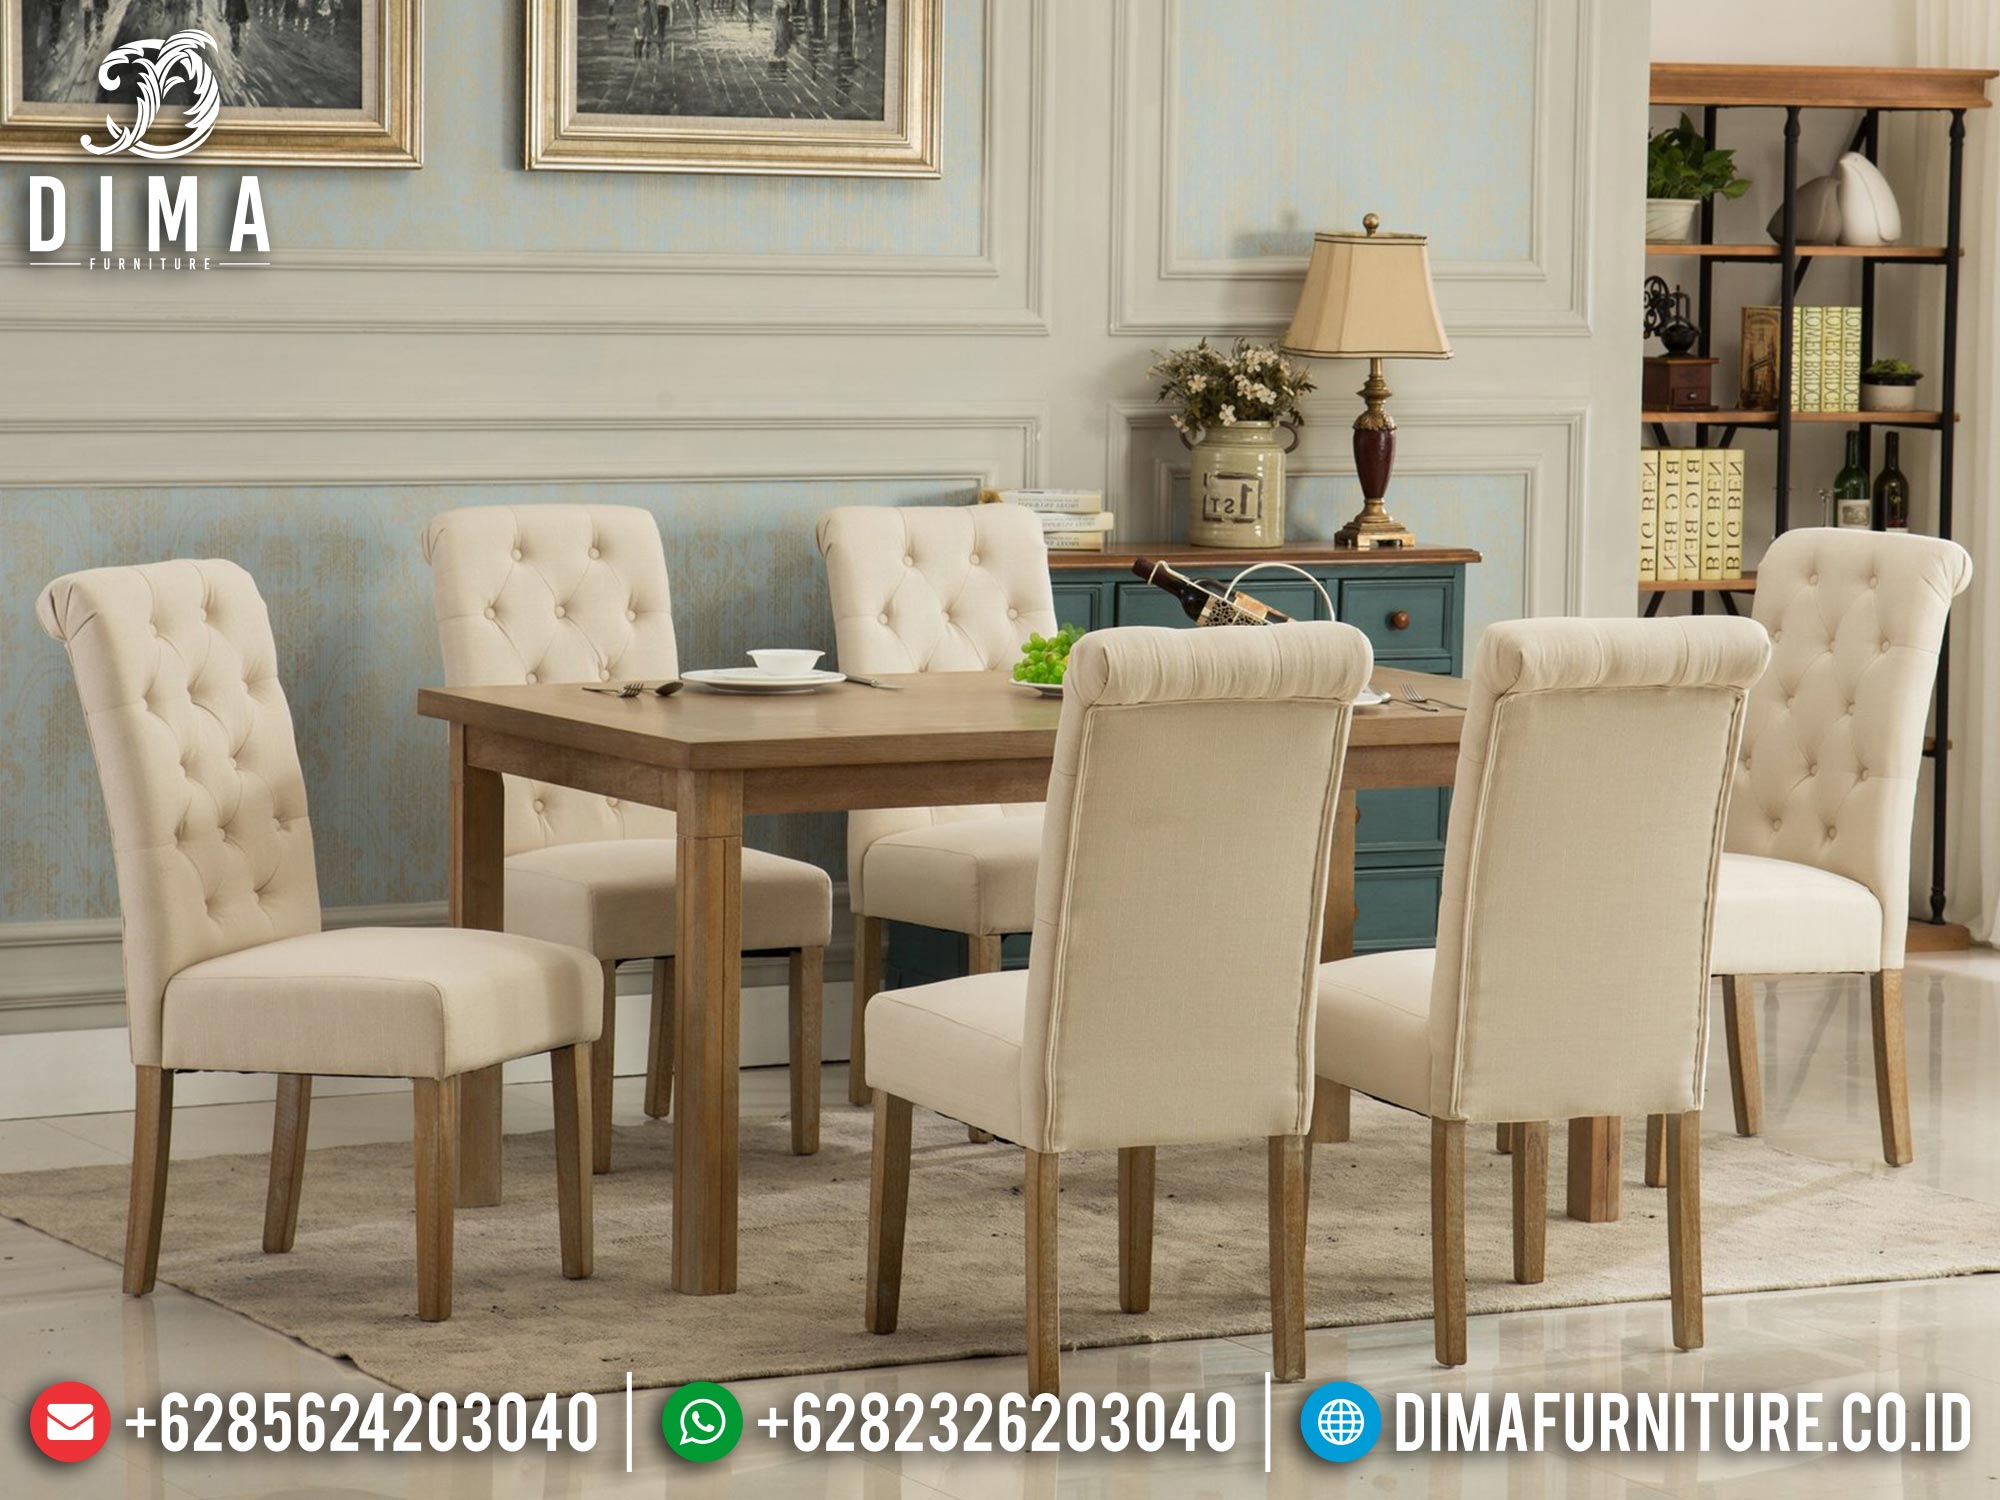 Book Now Meja Makan Minimalis Terbaru Natural Jati Classic Perhutani Mm-1067